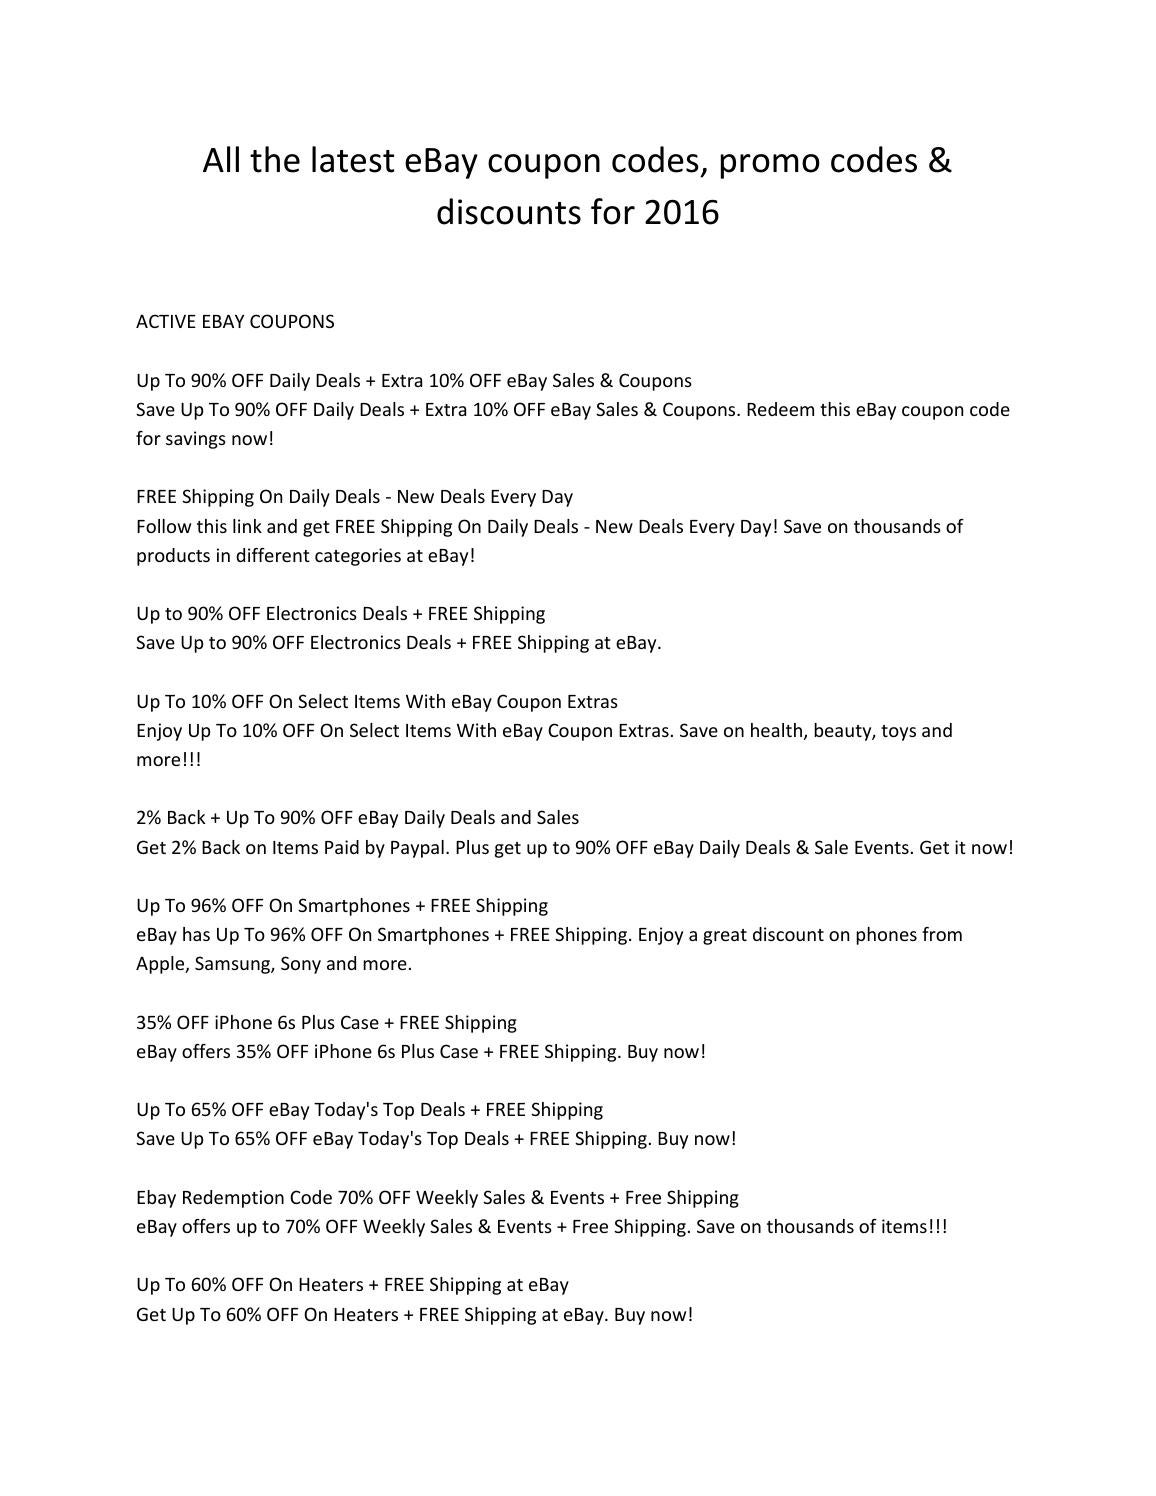 All The Latest Ebay Coupon Codes Promo Codes Discounts For 2016 By Emma Wat Son Issuu